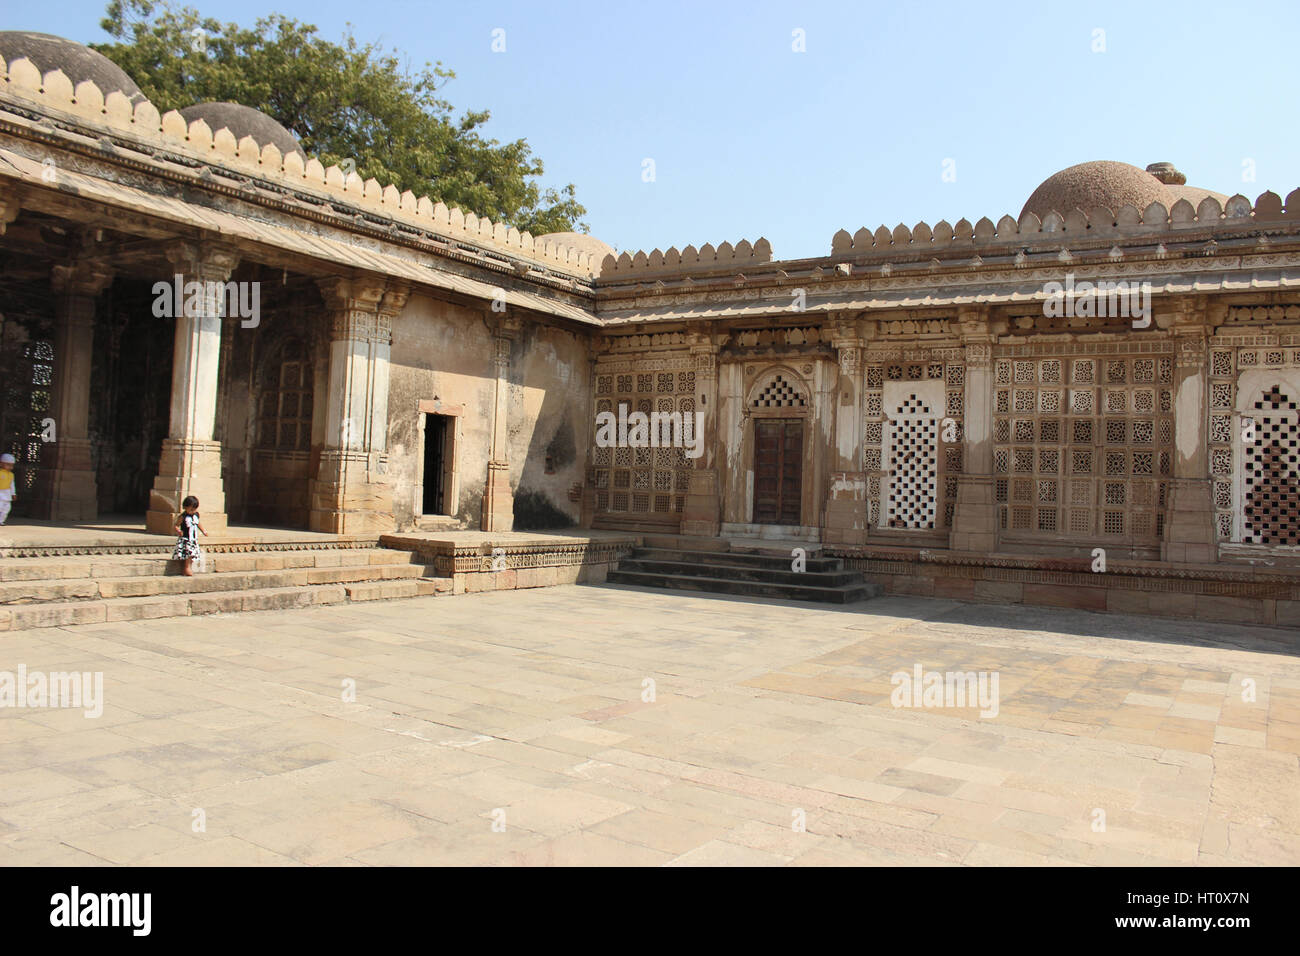 Courtyard adjacent to tomb complex. Sarkhej Roza, Ahmedabad, Gujarat India - Stock Image